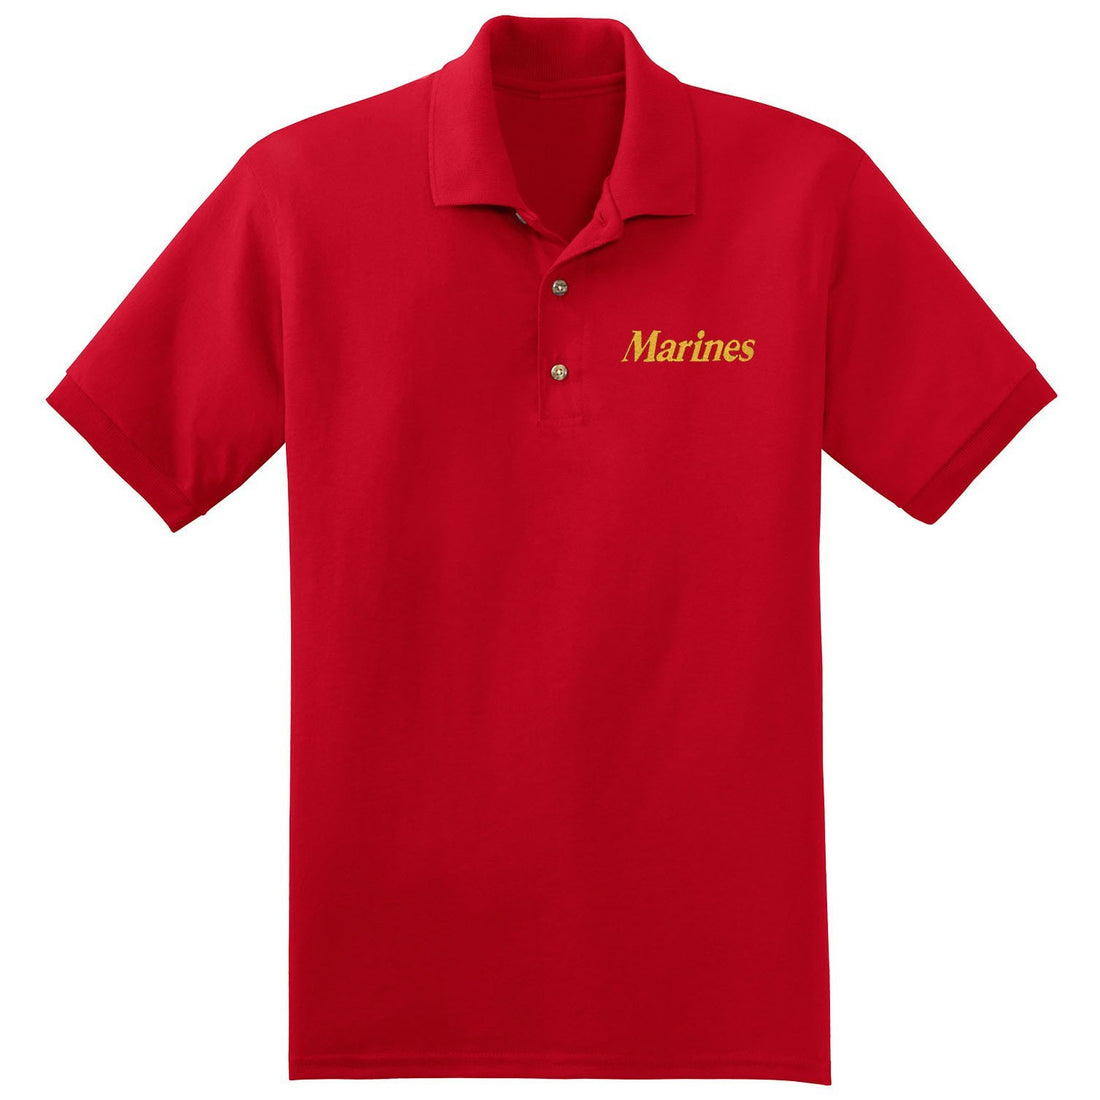 Marine Embroidered Polo (MULTIPLE COLORS) - Marine Corps Direct  - 4